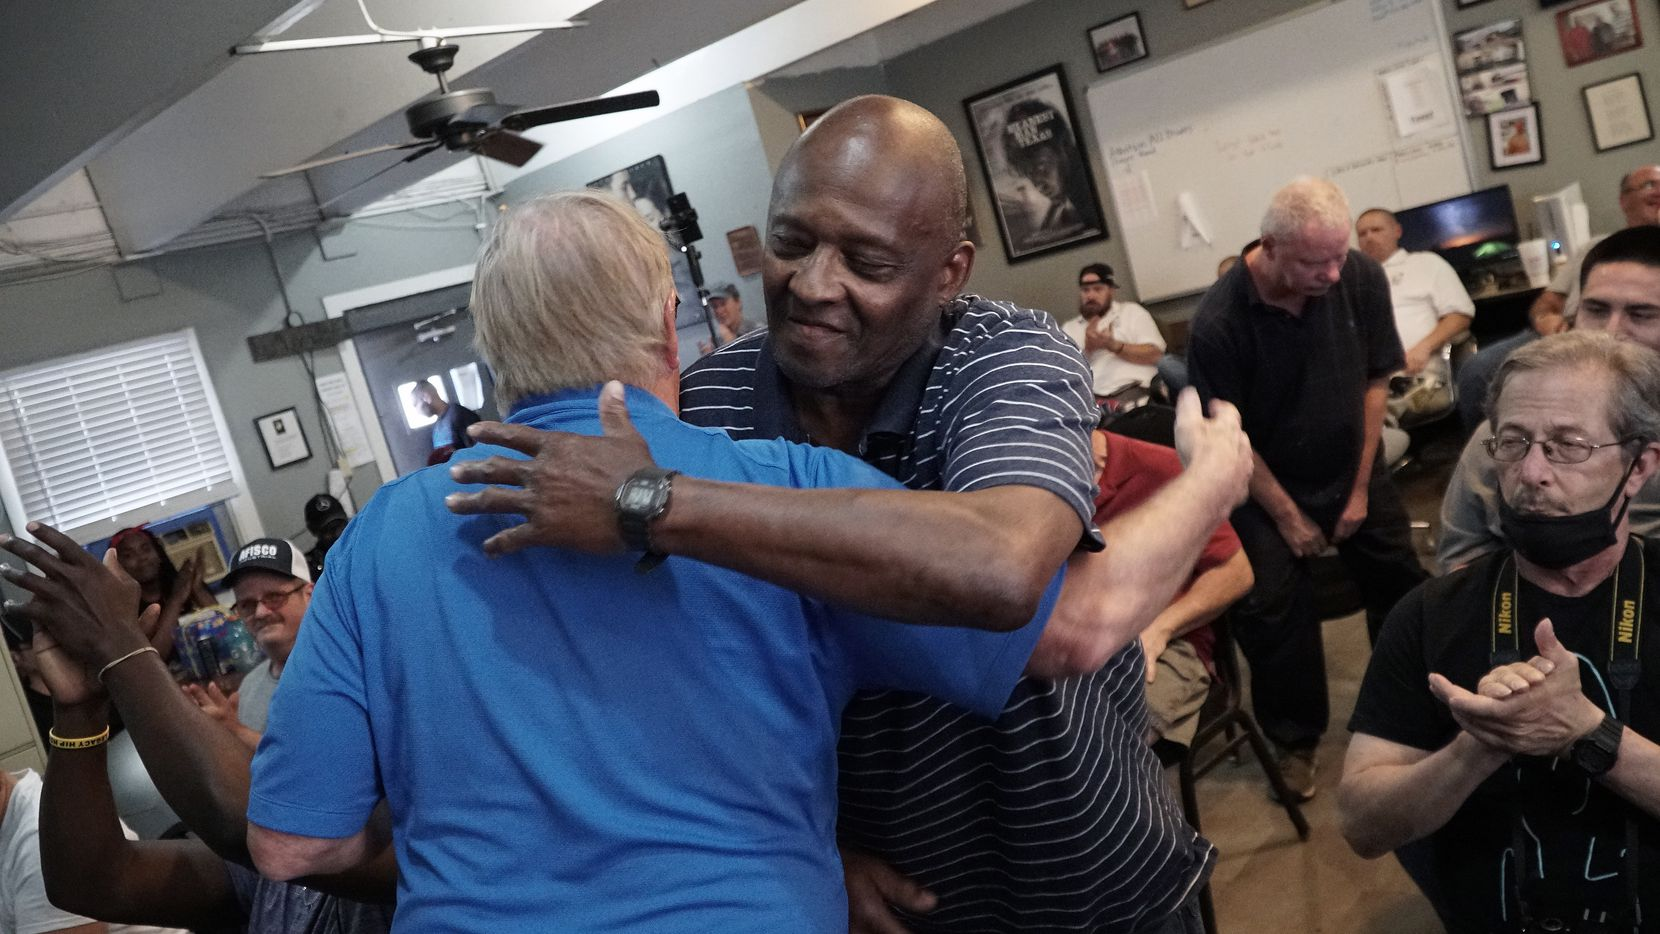 Tony Jackson (right) hugs Brent Burmaster after receiving a sobriety chip during a meeting at Soul's Harbor in Dallas. Burmaster is the shelter's executive director.